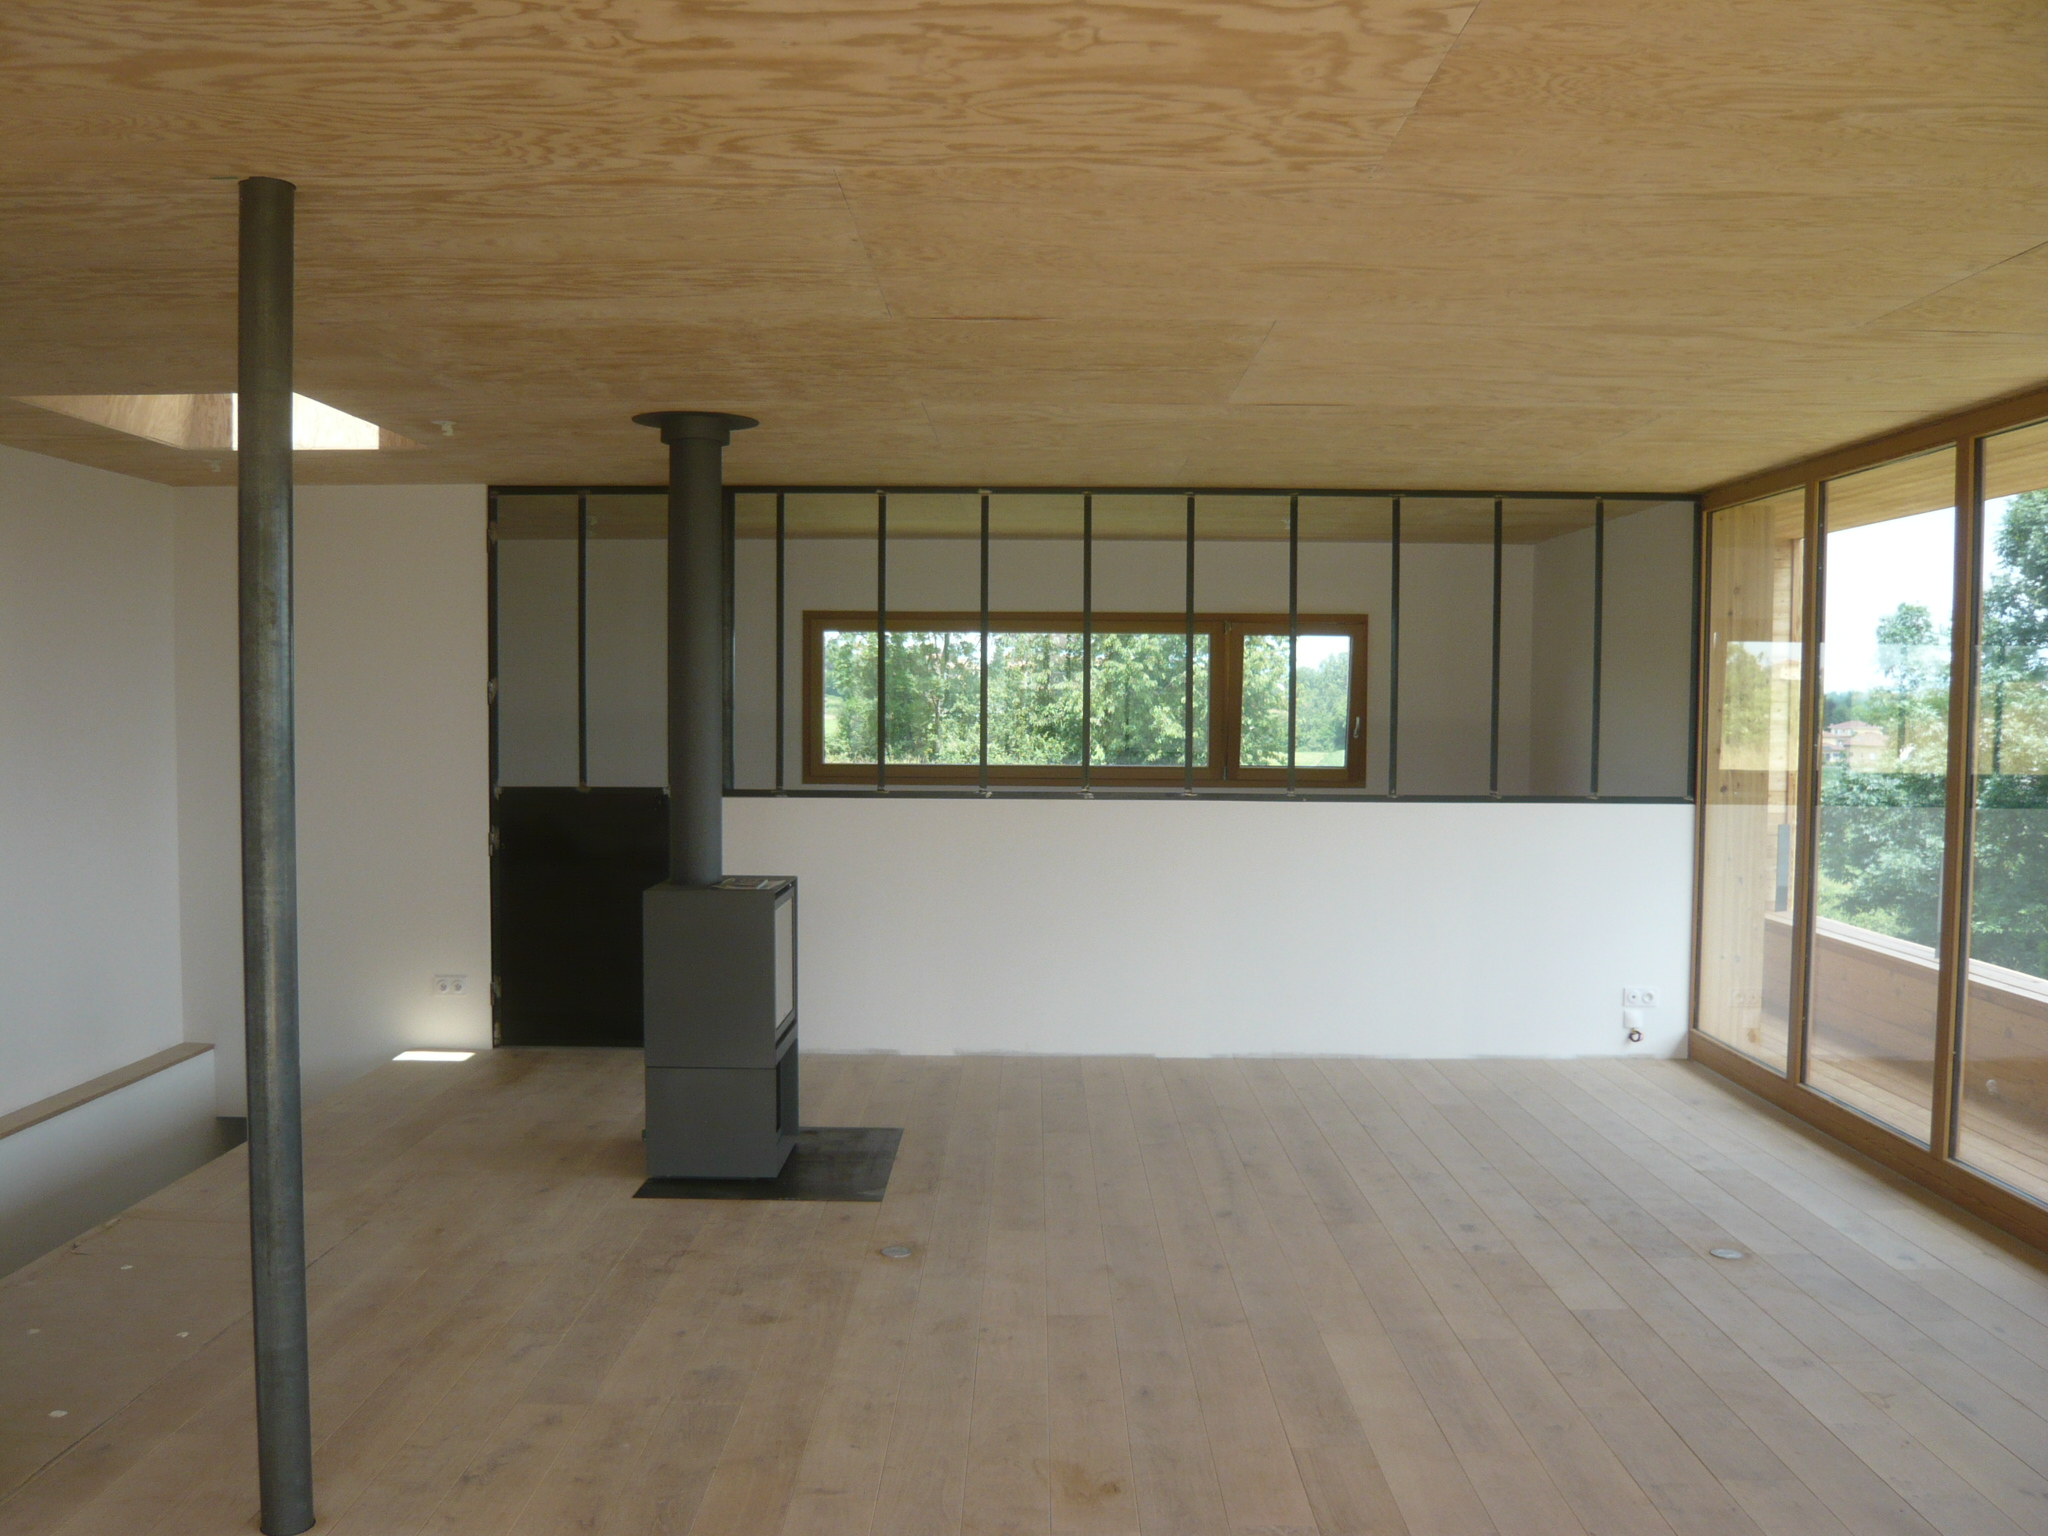 Interieur maison bois contemporaine maison eko for Interieur maison bois